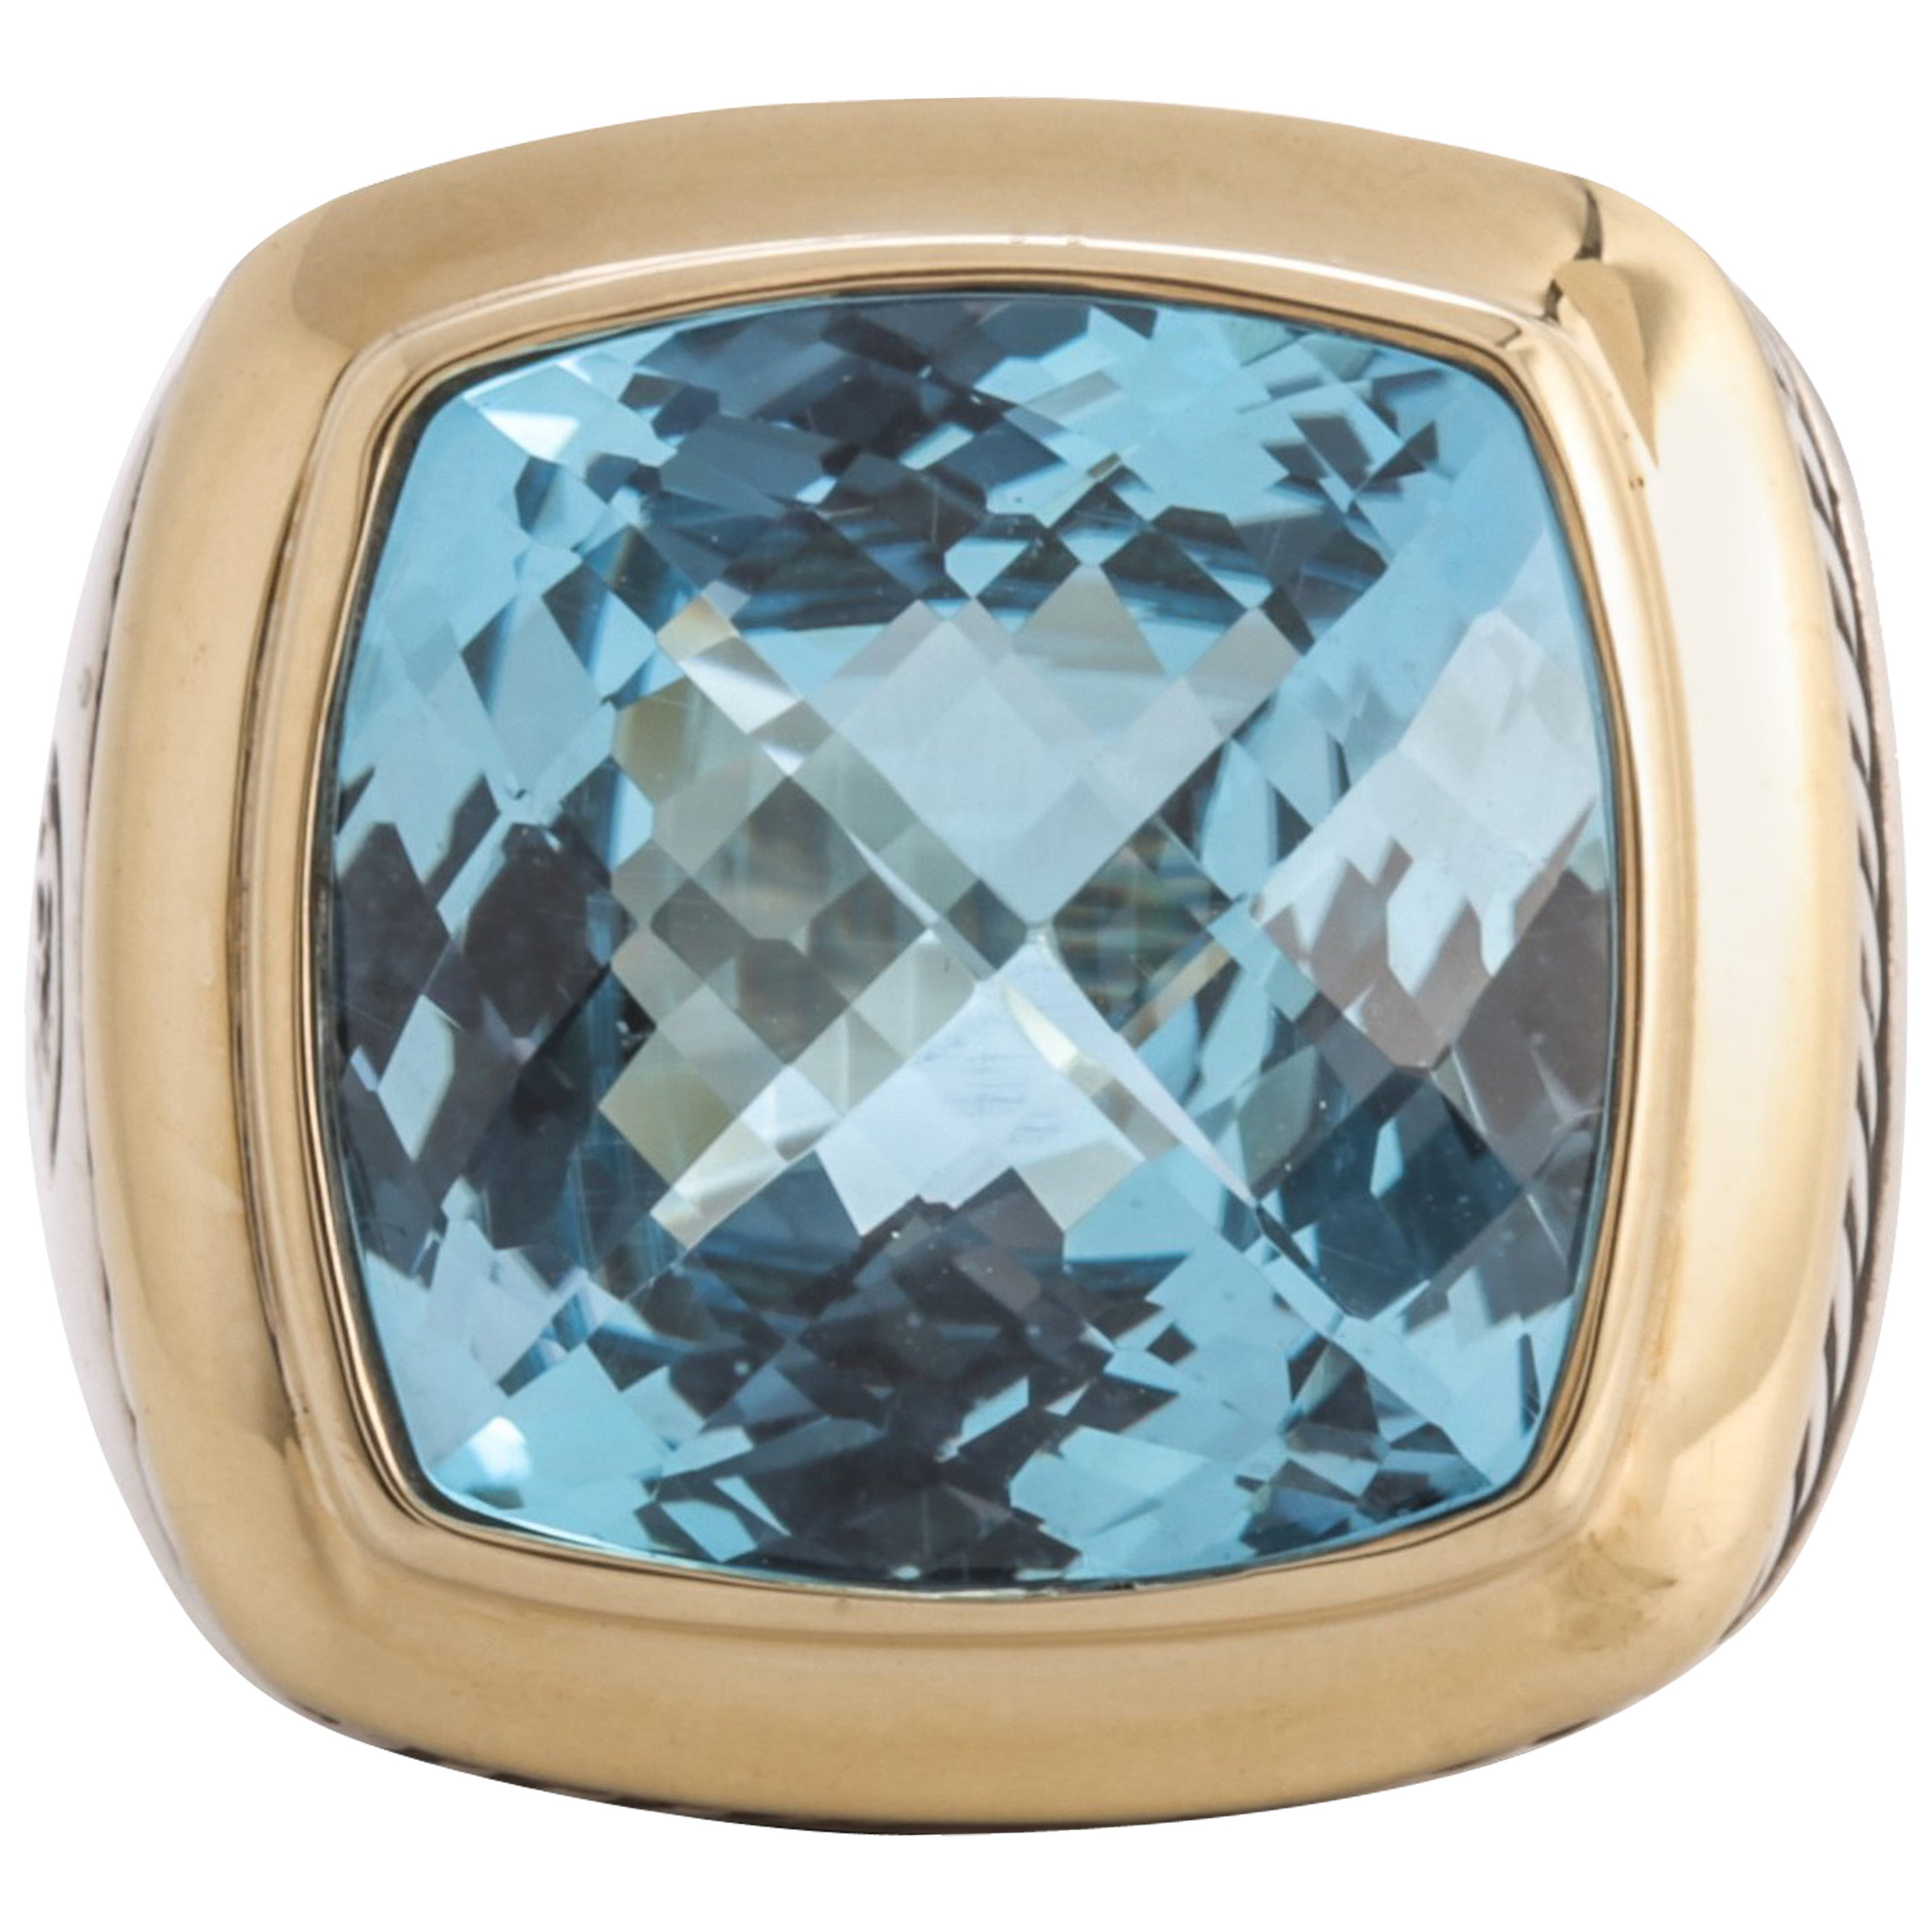 78aece88e8c0 David Yurman Blue Topaz Albion Ring at 1stdibs